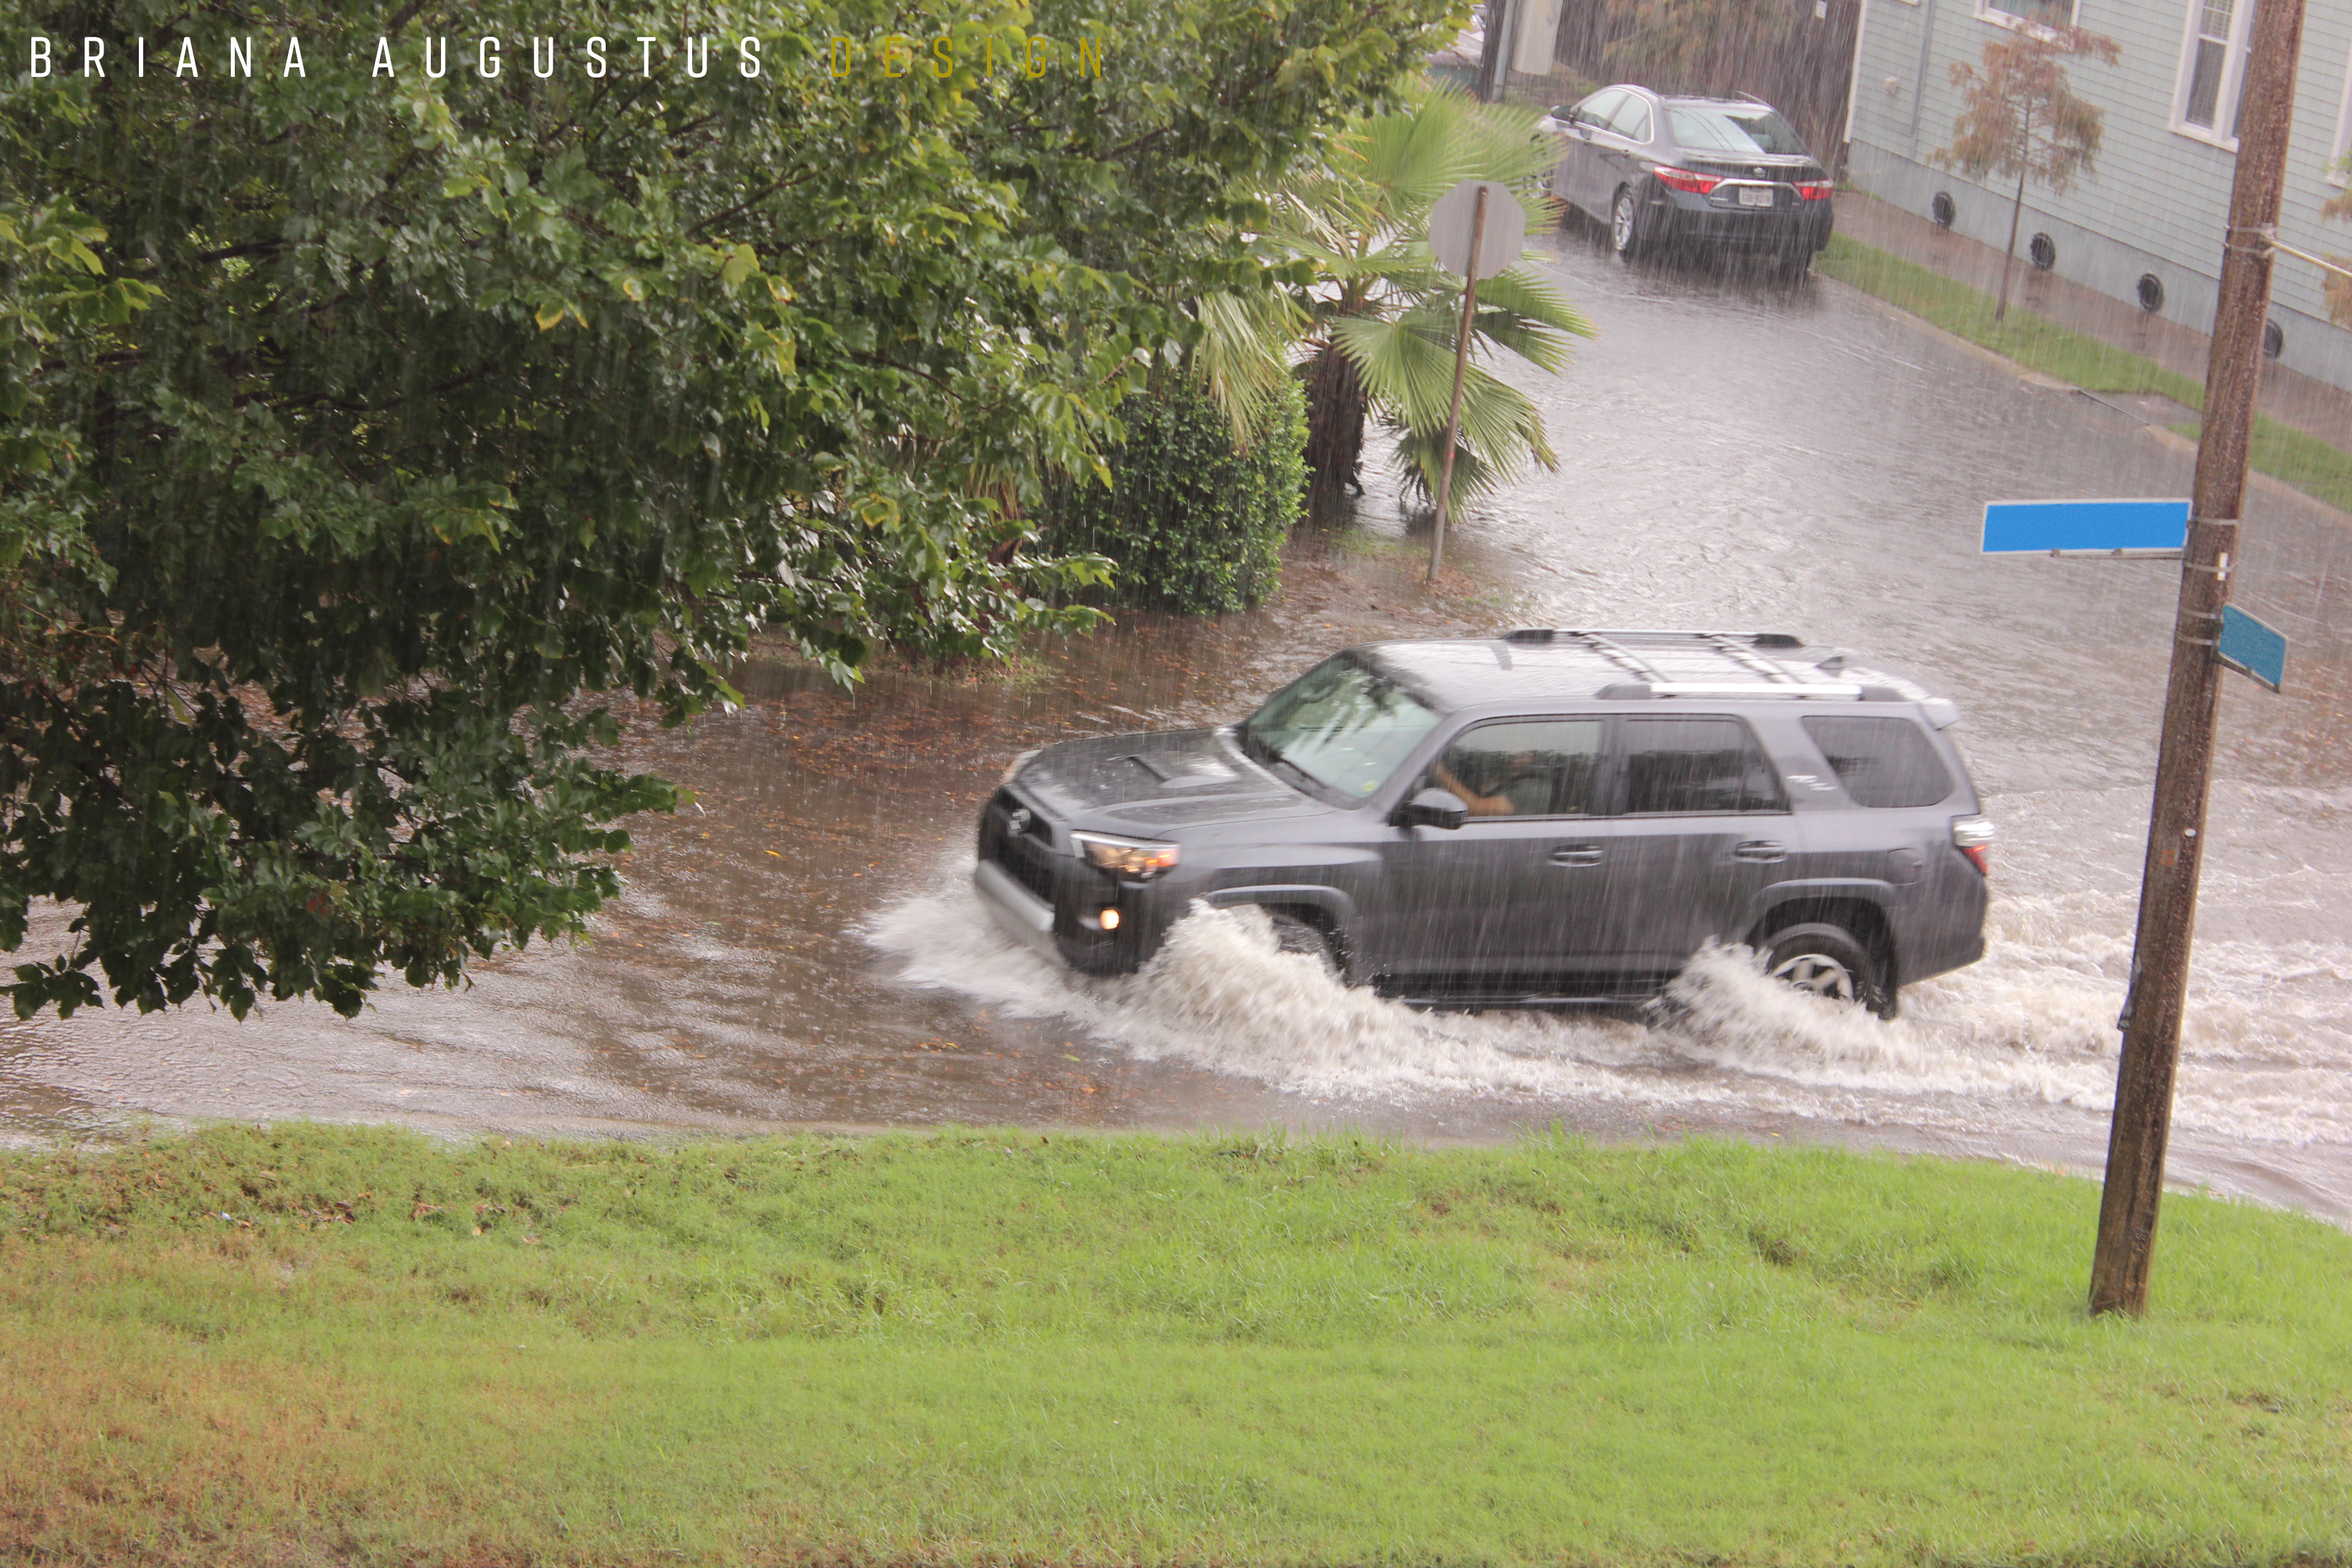 SUV wading through flooded roadway.